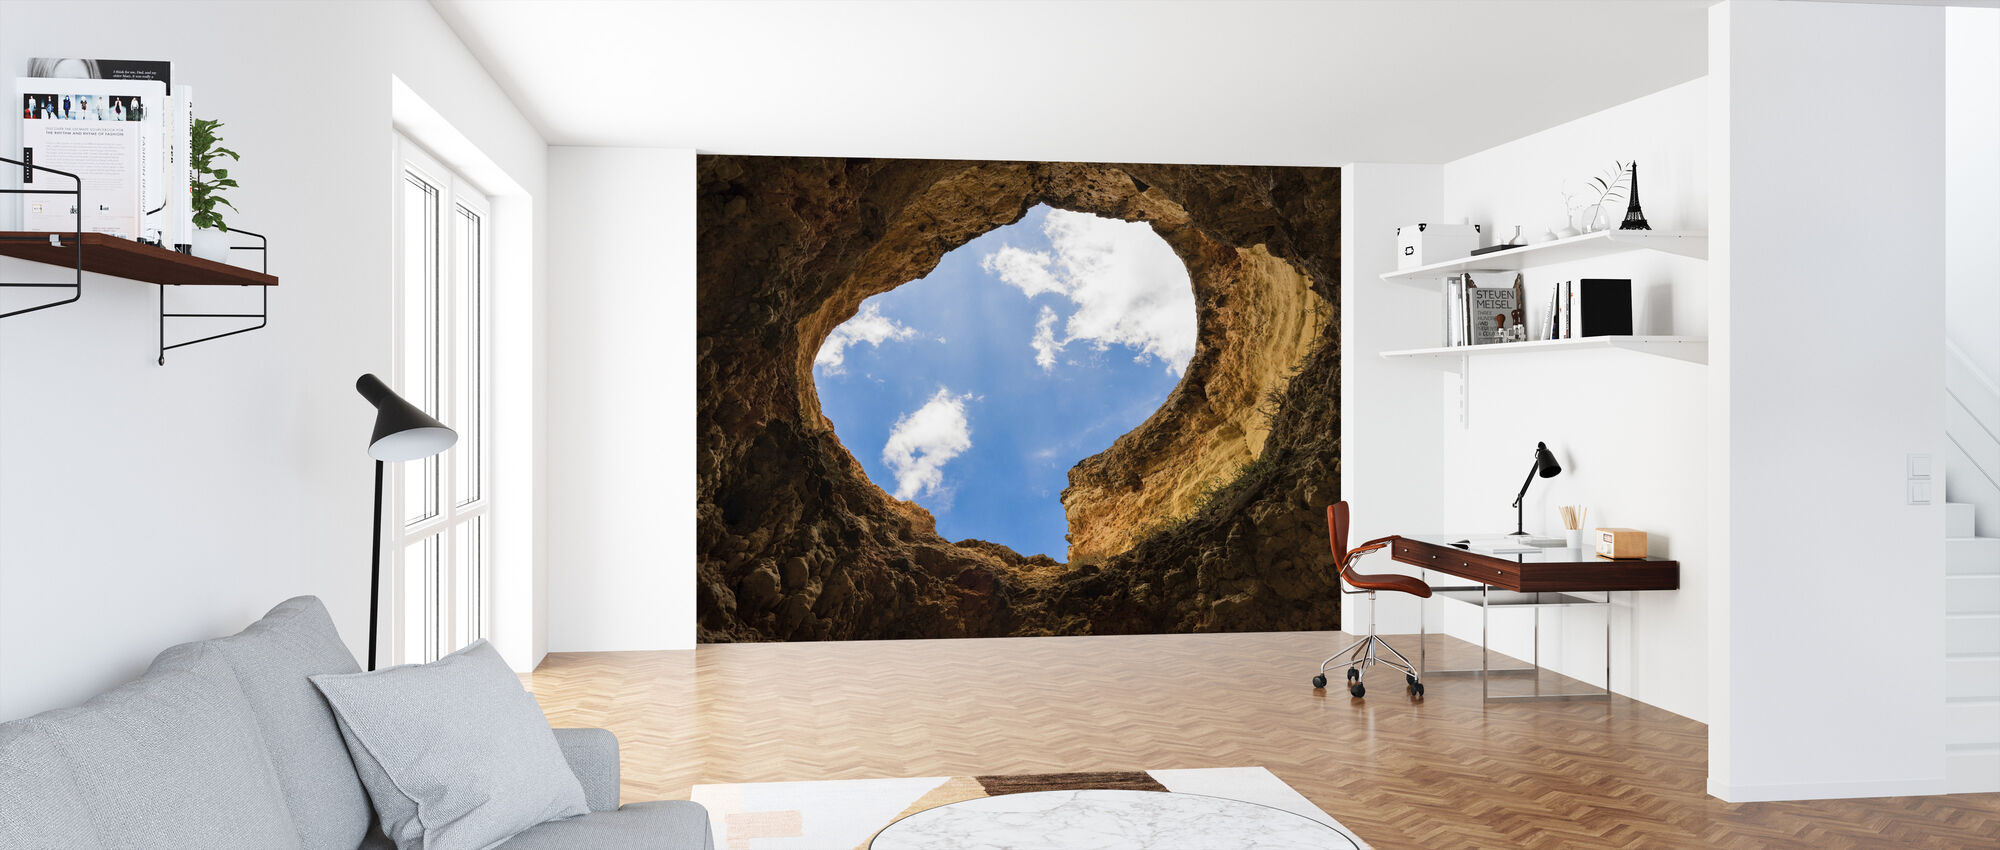 Cave Hole - Wallpaper - Office